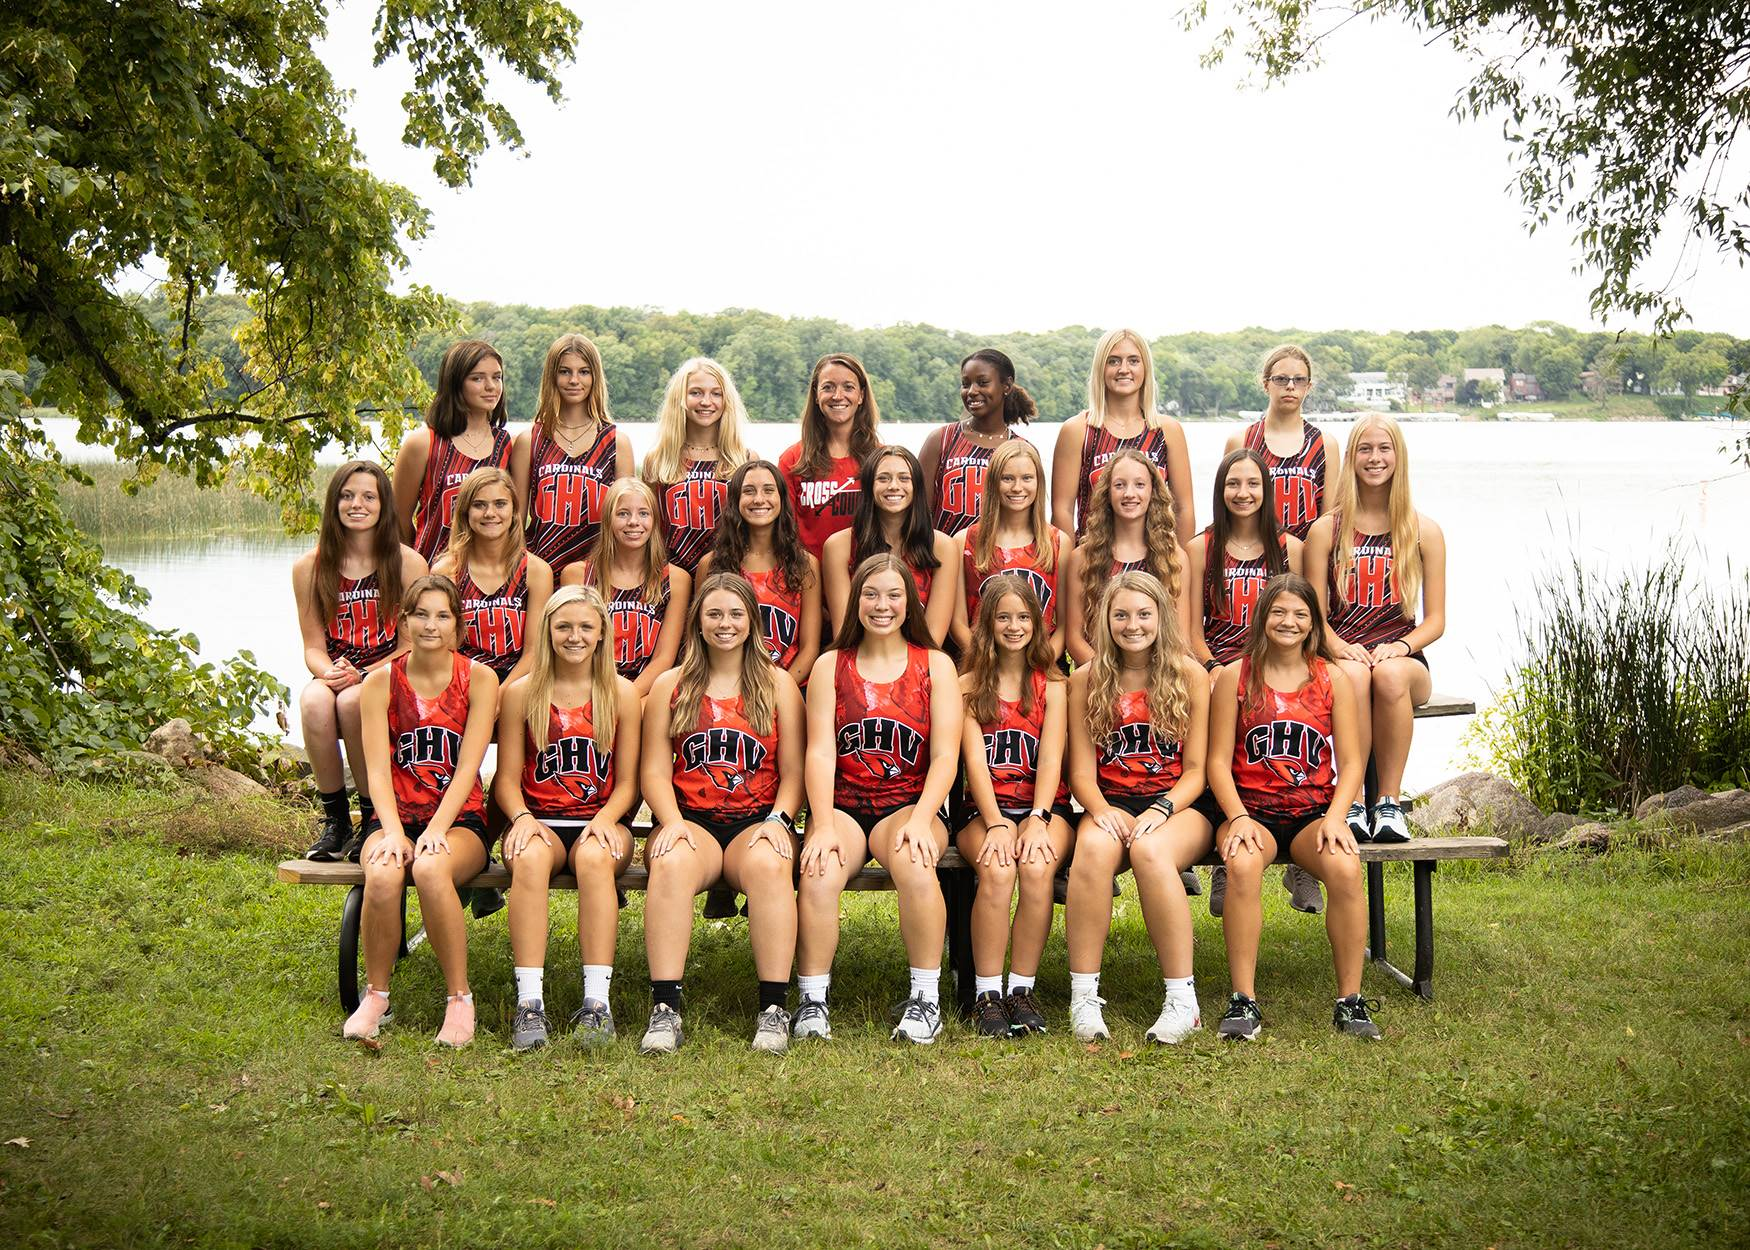 Girls cross country runners posing for a group photo